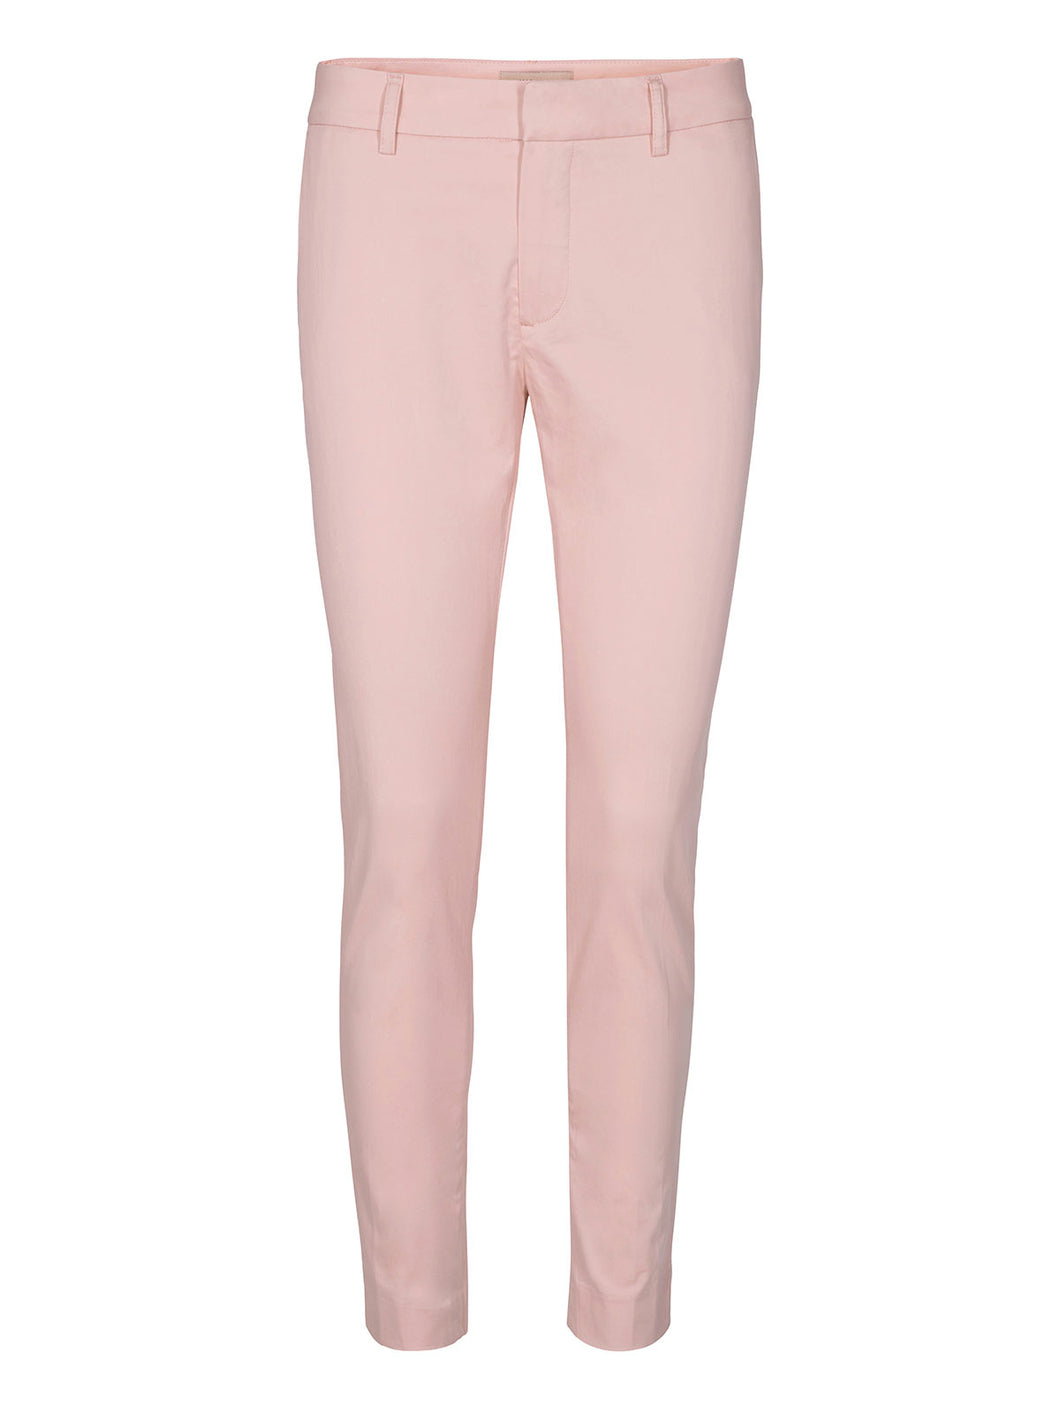 ABBEY COLE ANKLE PANT - chintz rose